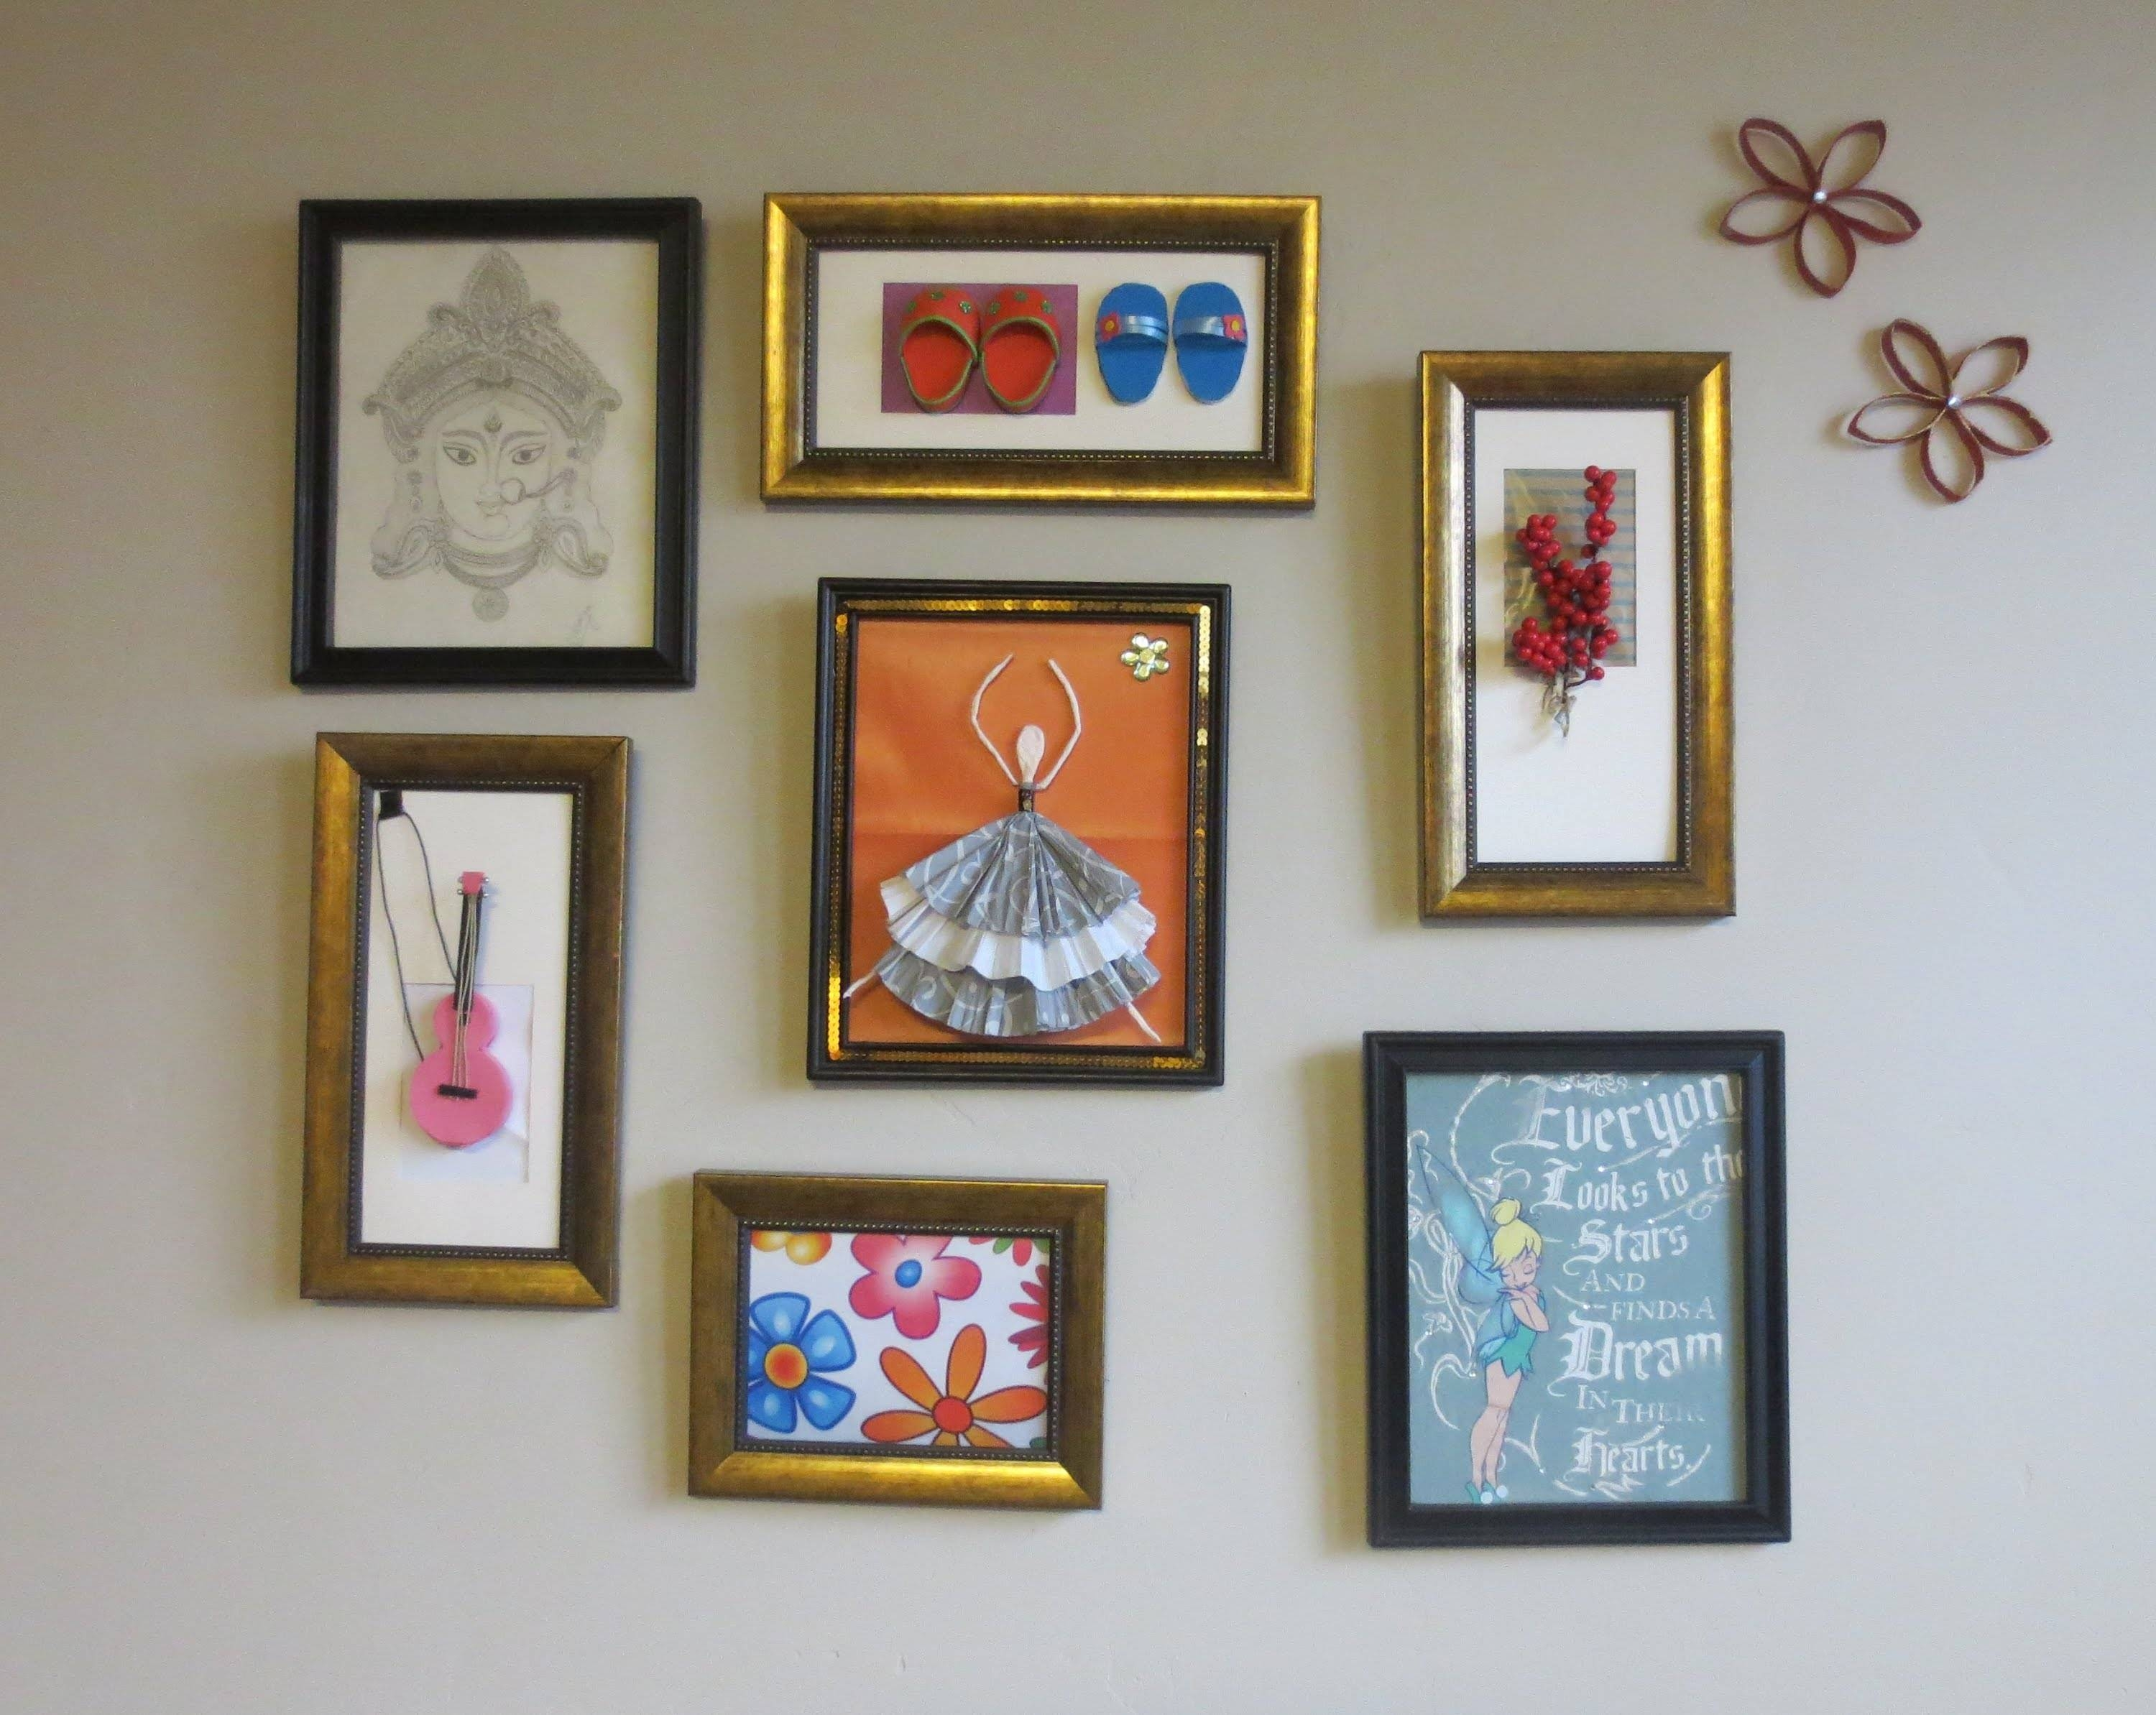 Home Decor : Tshirt Graphic & 3D Wall Art Picture Frame Collage Pertaining To 2018 Diy 3D Wall Art Decor (View 13 of 20)